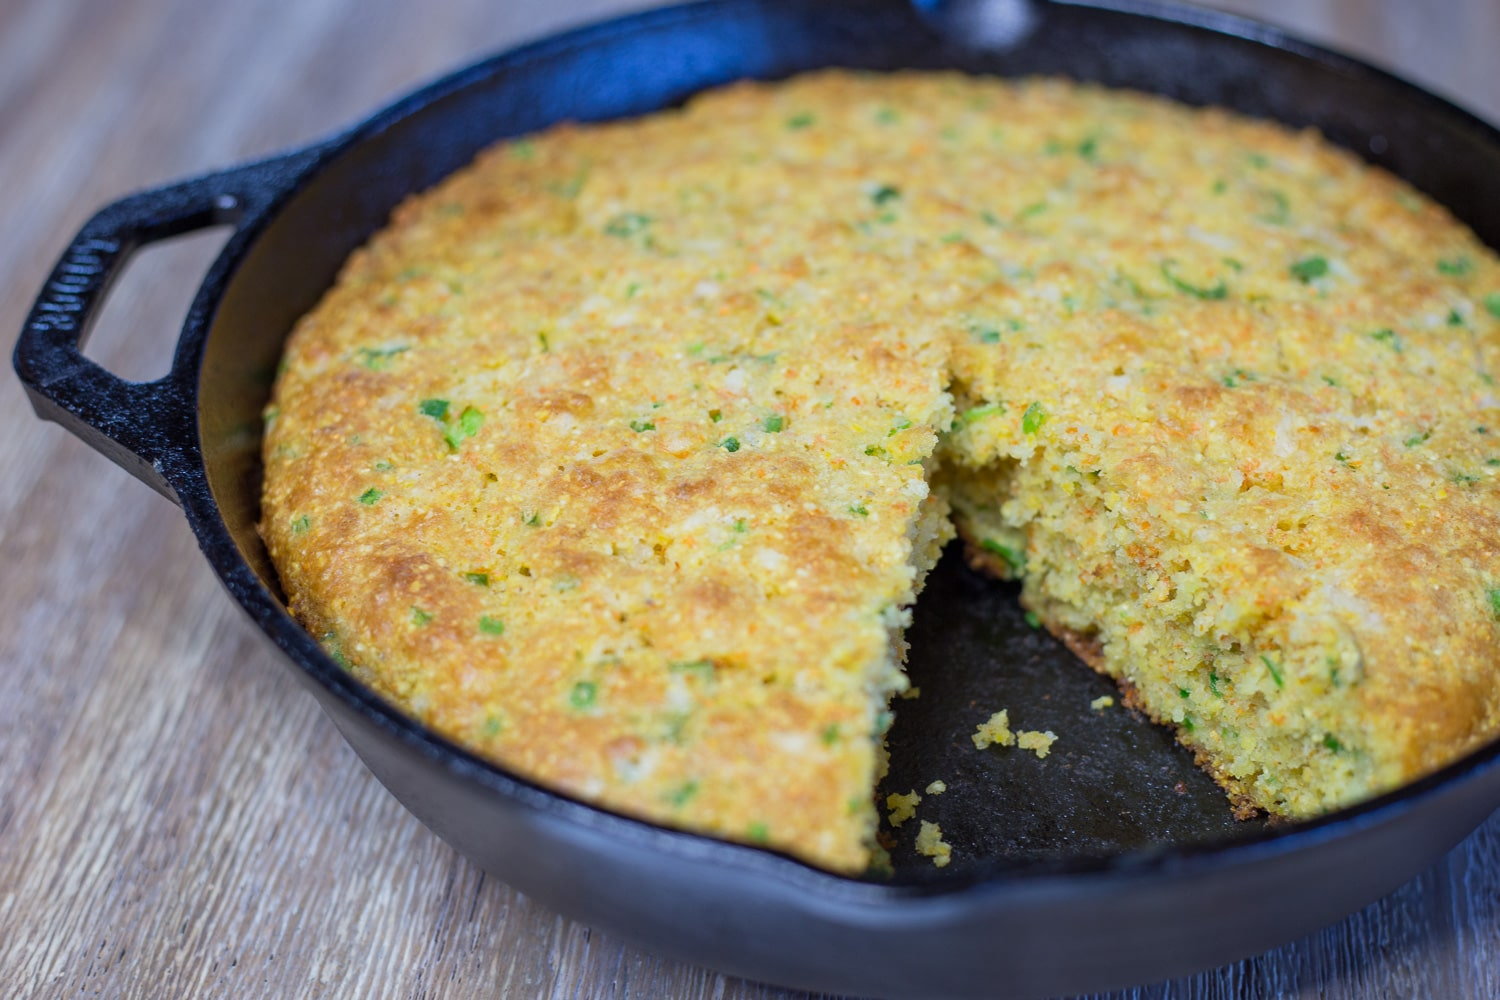 Jalapeno cheddar cornbread is the perfect side dish for all of the soups, stews, and casseroles that come with the Fall season! |artzyfoodie.com|